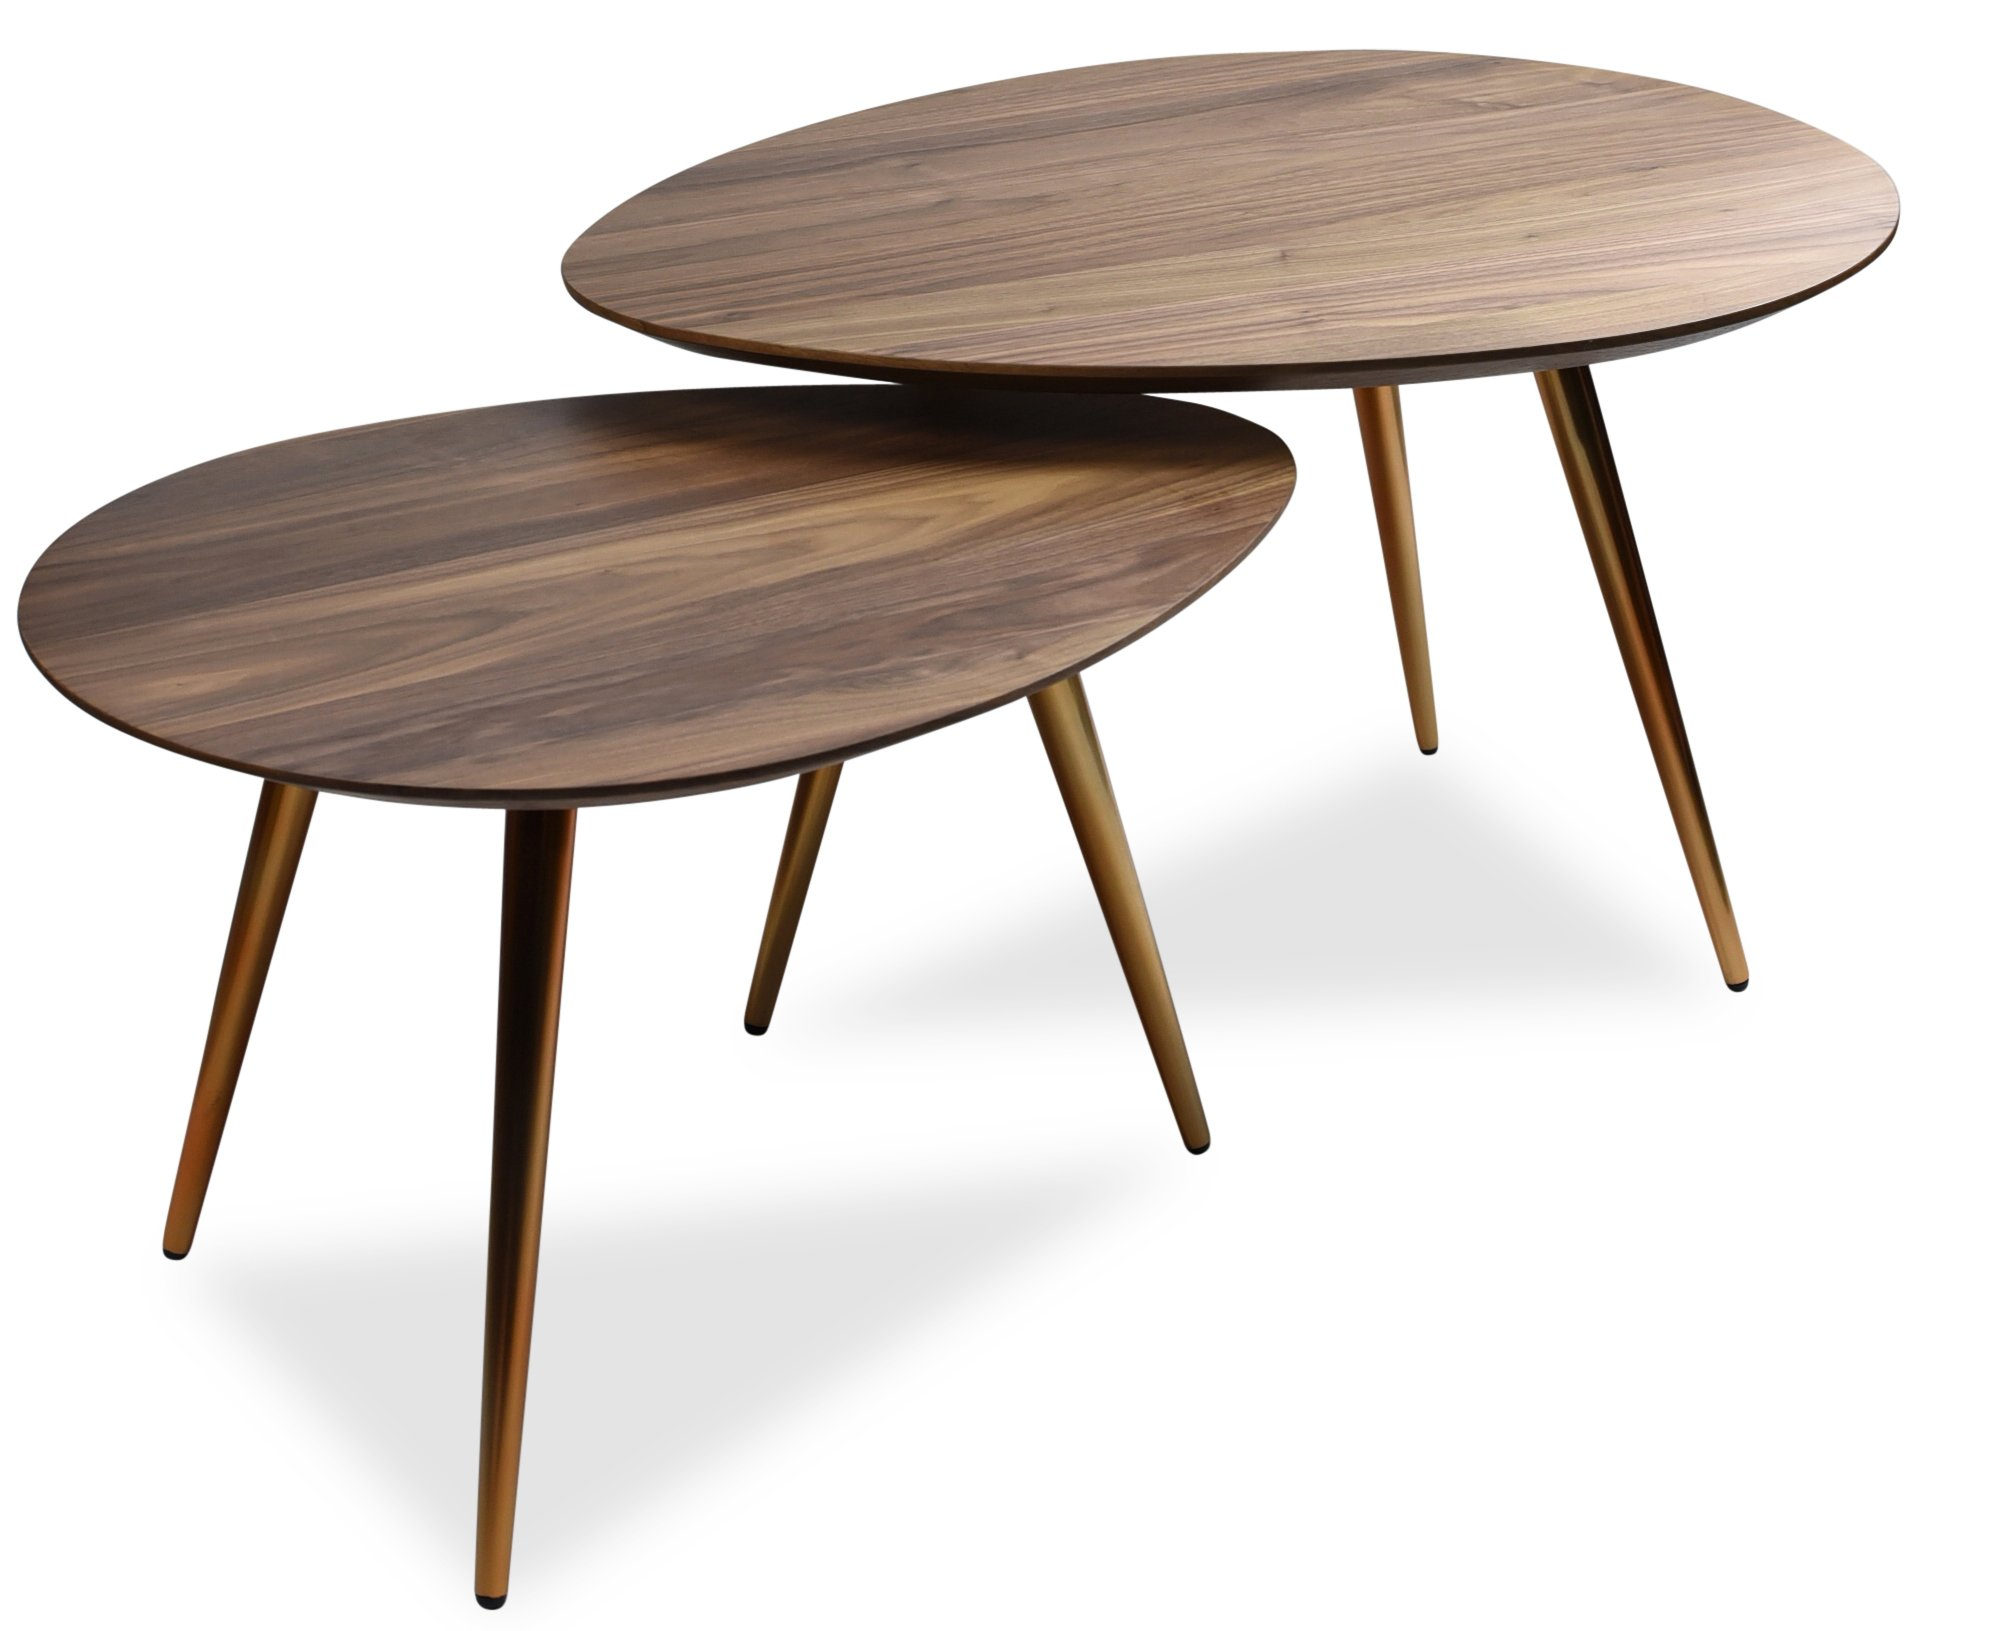 Mid Century Modern Coffee Table Set  by Edloe Finch - Coffee Tables for Living Room - Contemporary & Retro Low Walnut Wood Midcentury Nesting Table  - 2 Piece Set by Edloe Finch